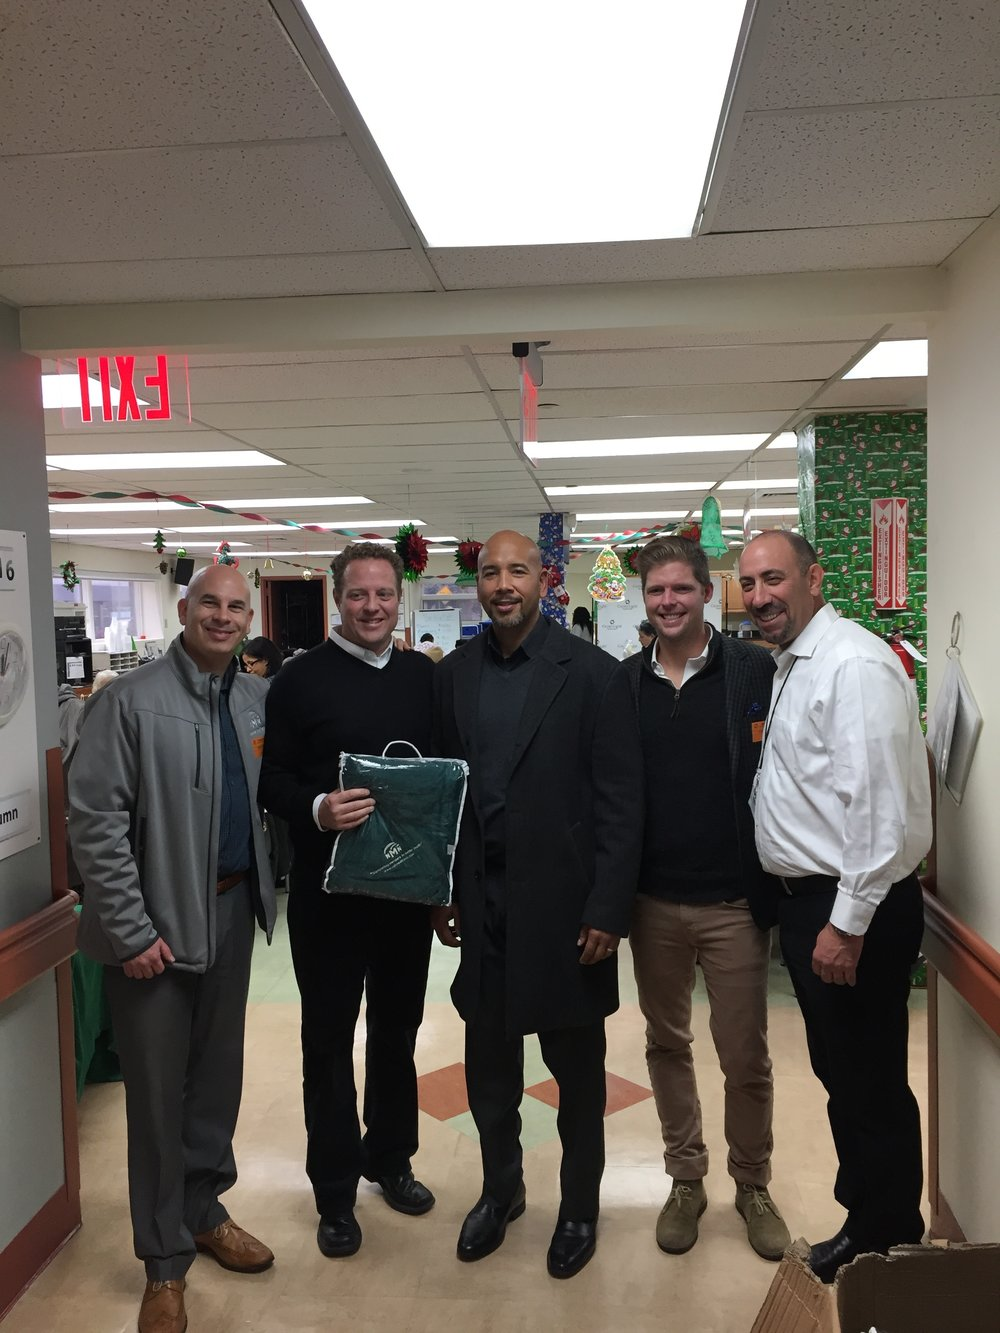 Members of National MedTrans executive team at a recent NMN Cares event donating blankets to members.  Bronx Borough President, Rubén Díaz Jr., also participated in the event.  From left to right: Andrew Winakor (CEO), Steve Wilson, (CXO), Rubén Díaz Jr. (Bronx Borough President), Billy McKee (President), Greg Billing (EVP)